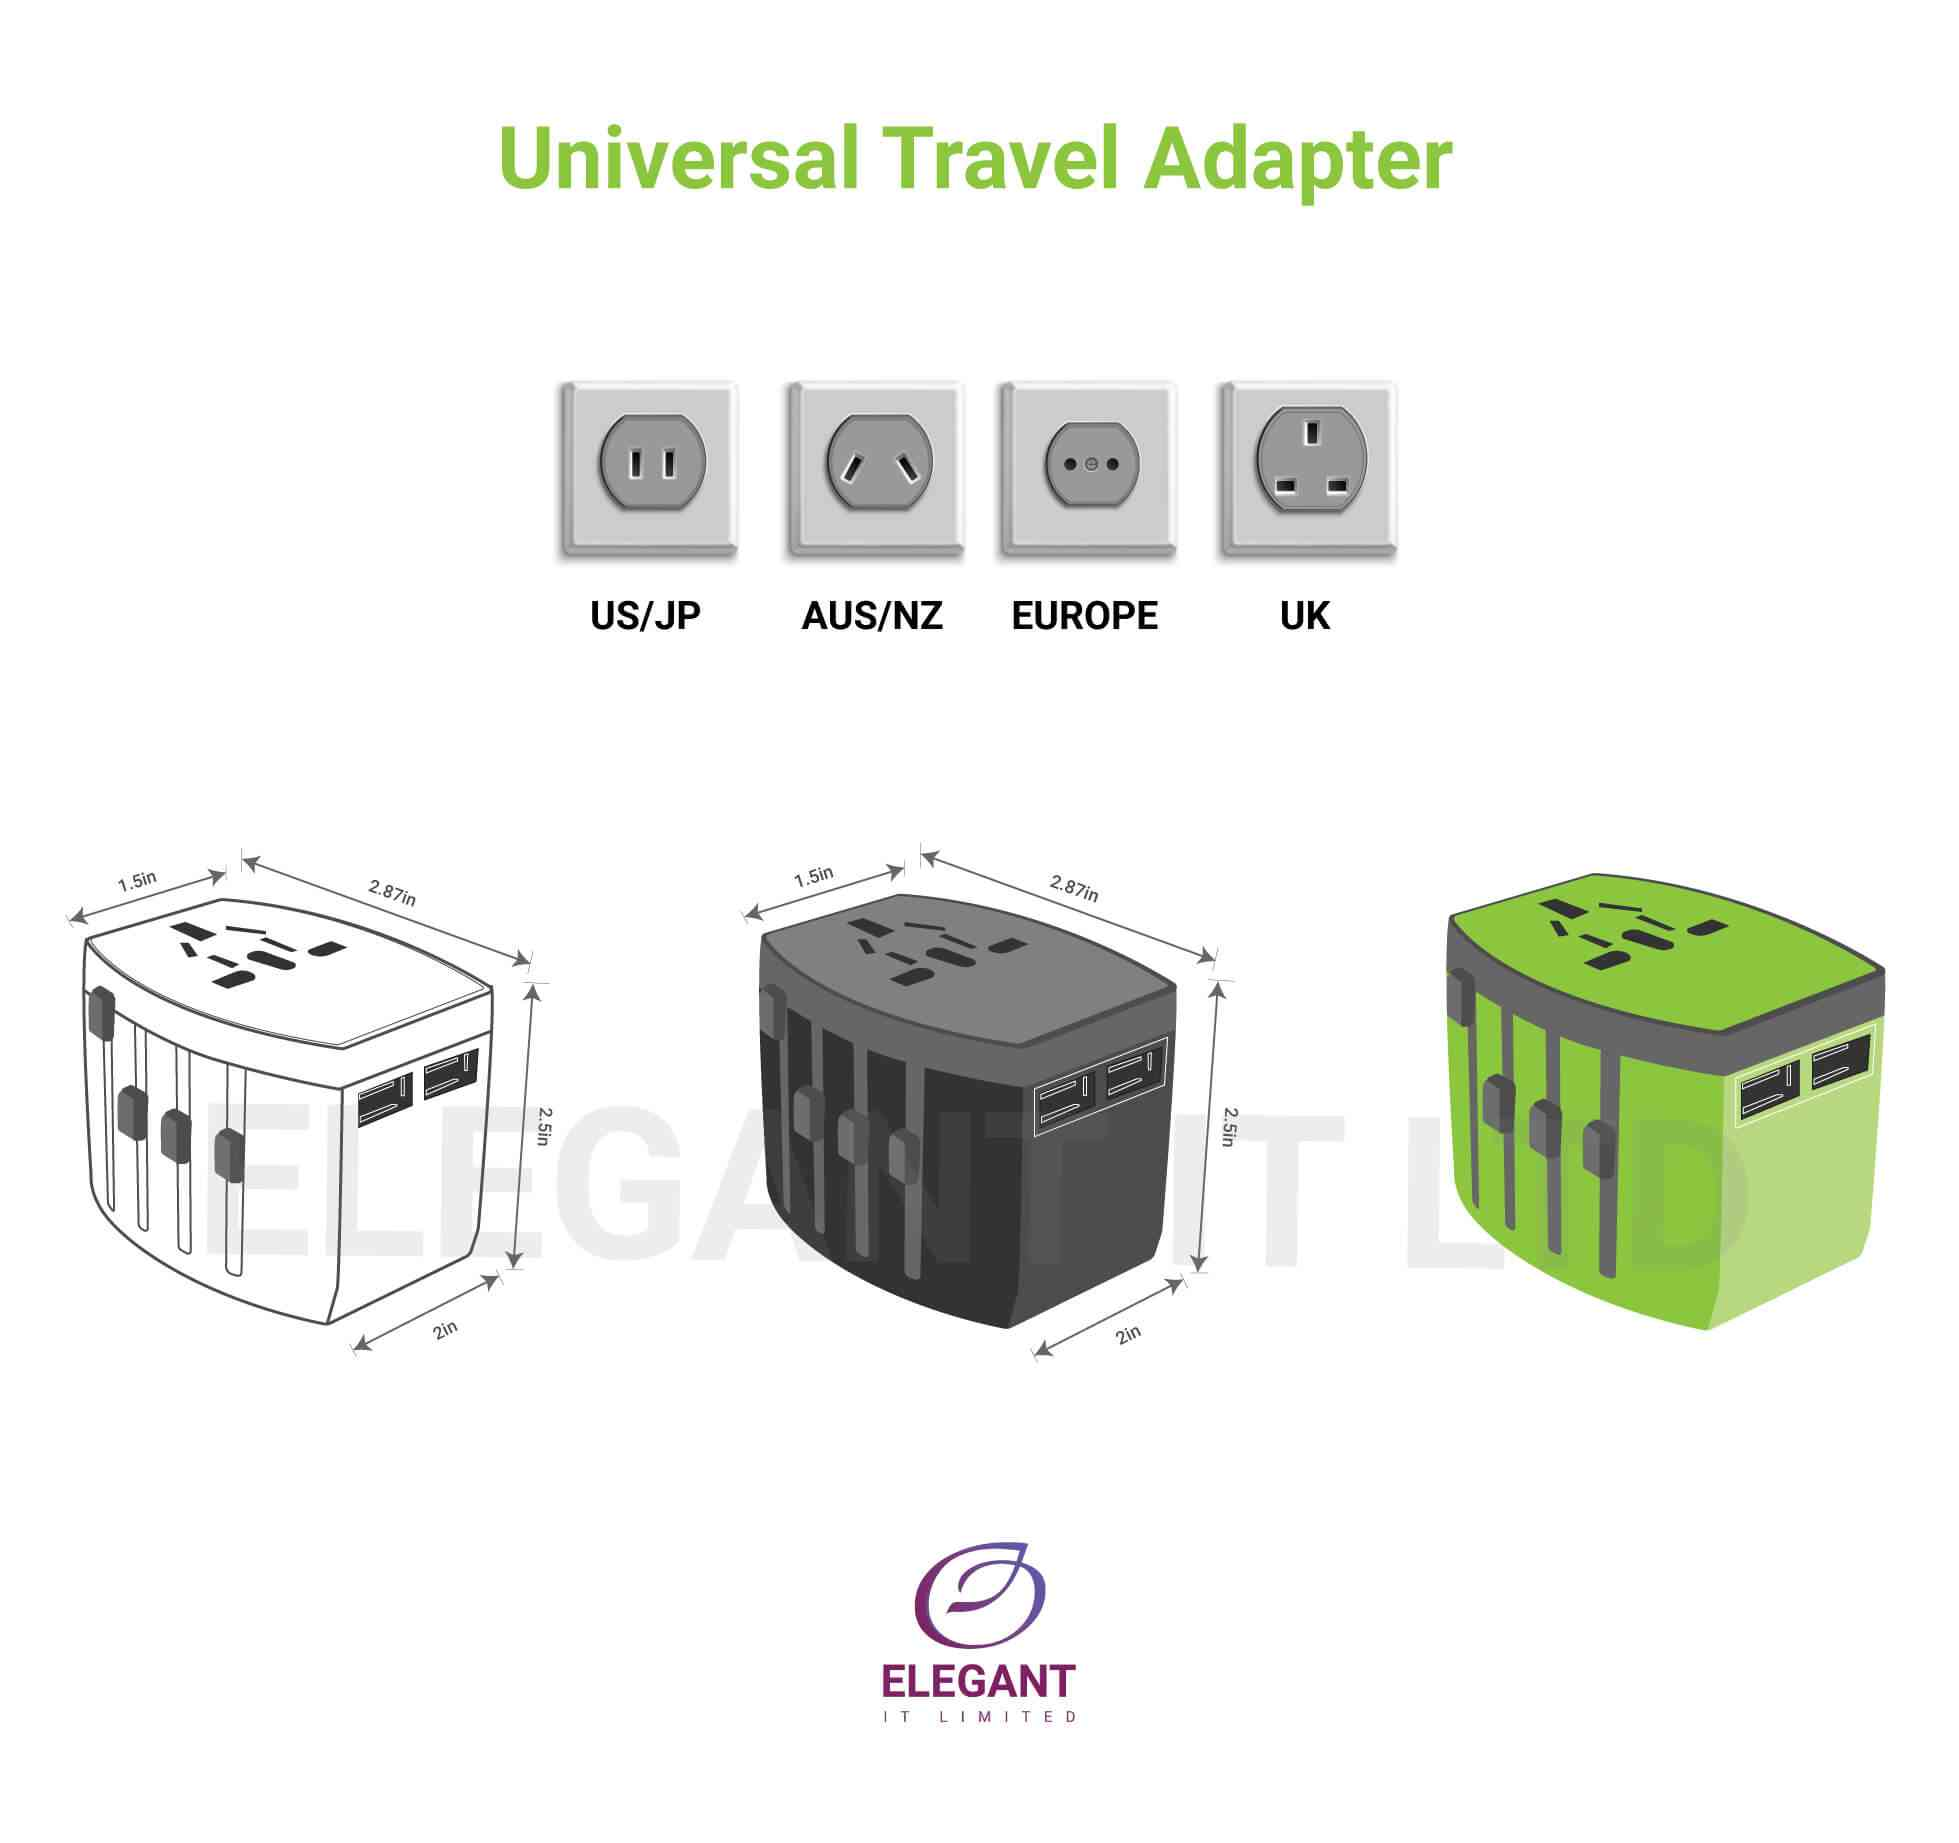 universal travel adapter design